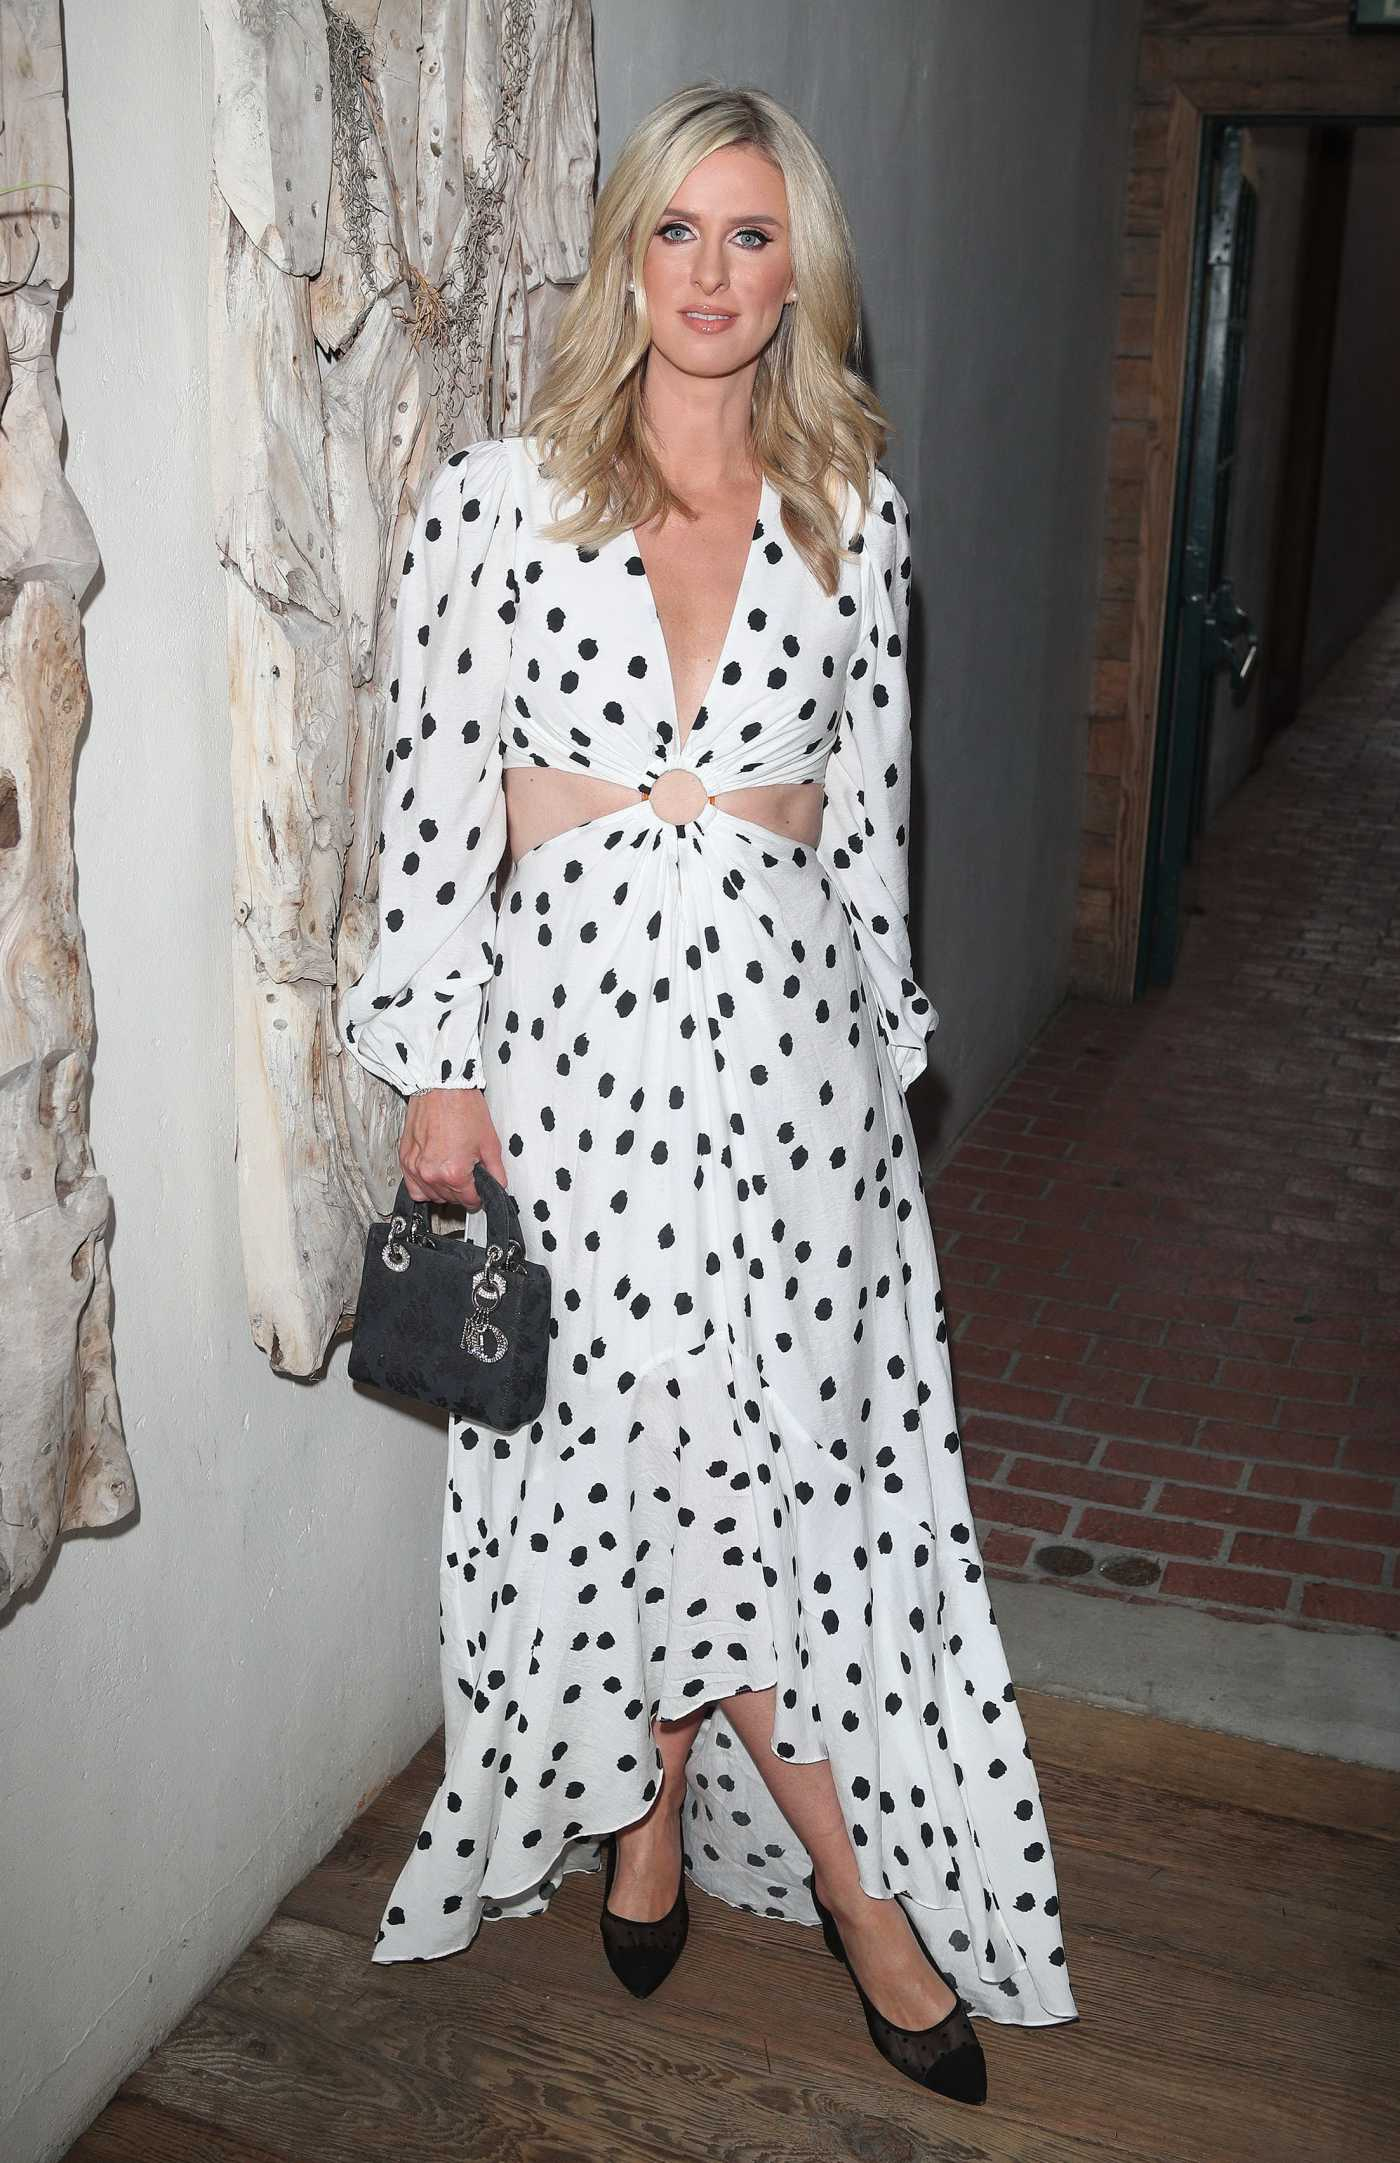 Nicky Hilton in a White Polka Dot Dress Arrives at the Fia Restaurant Out with Paris Hilton in Santa Monica 07/19/2021